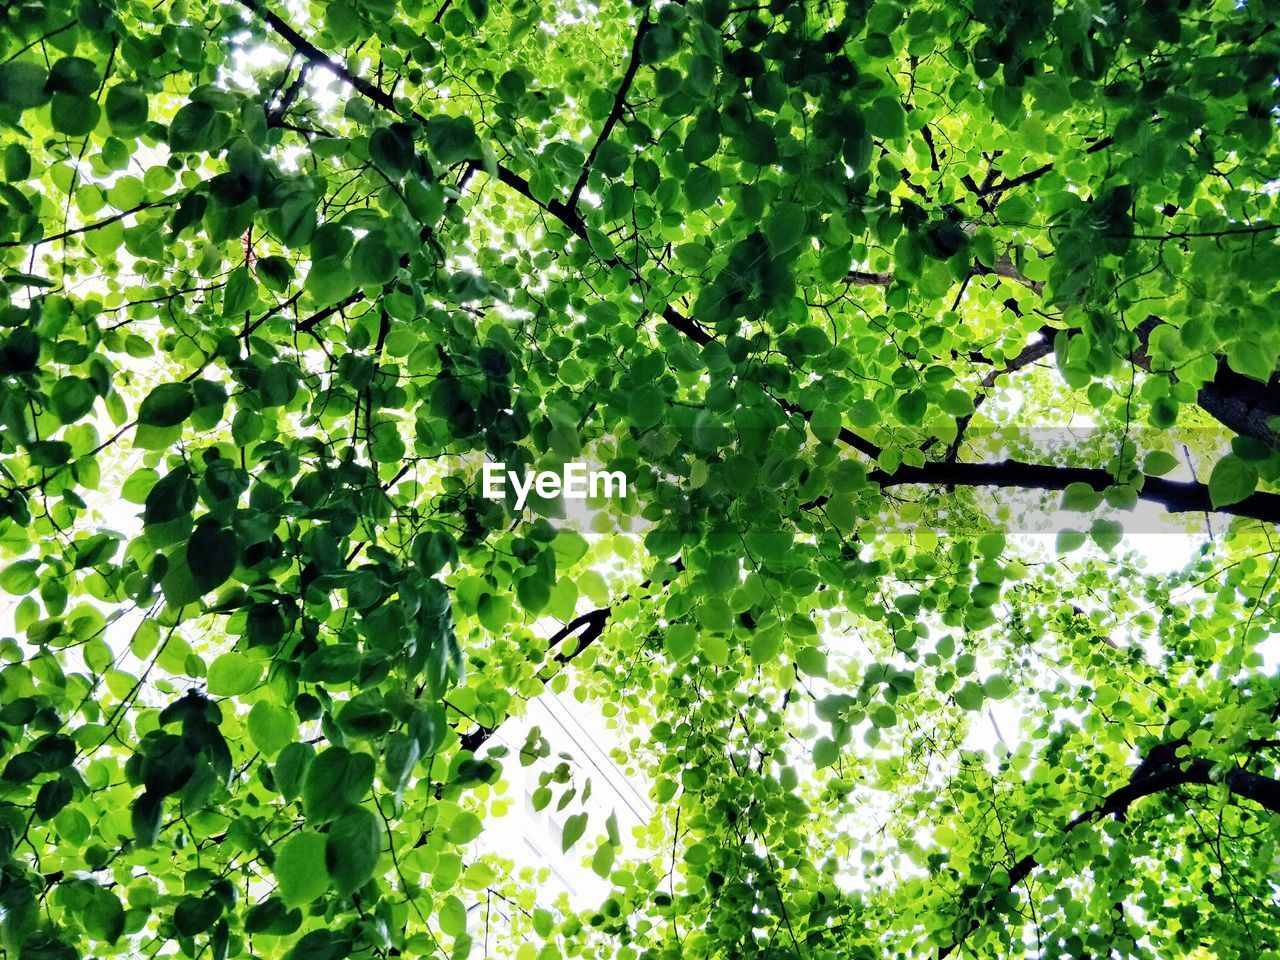 growth, green color, plant, leaf, plant part, tree, nature, no people, beauty in nature, branch, day, low angle view, outdoors, freshness, sunlight, full frame, food and drink, land, tranquility, backgrounds, directly below